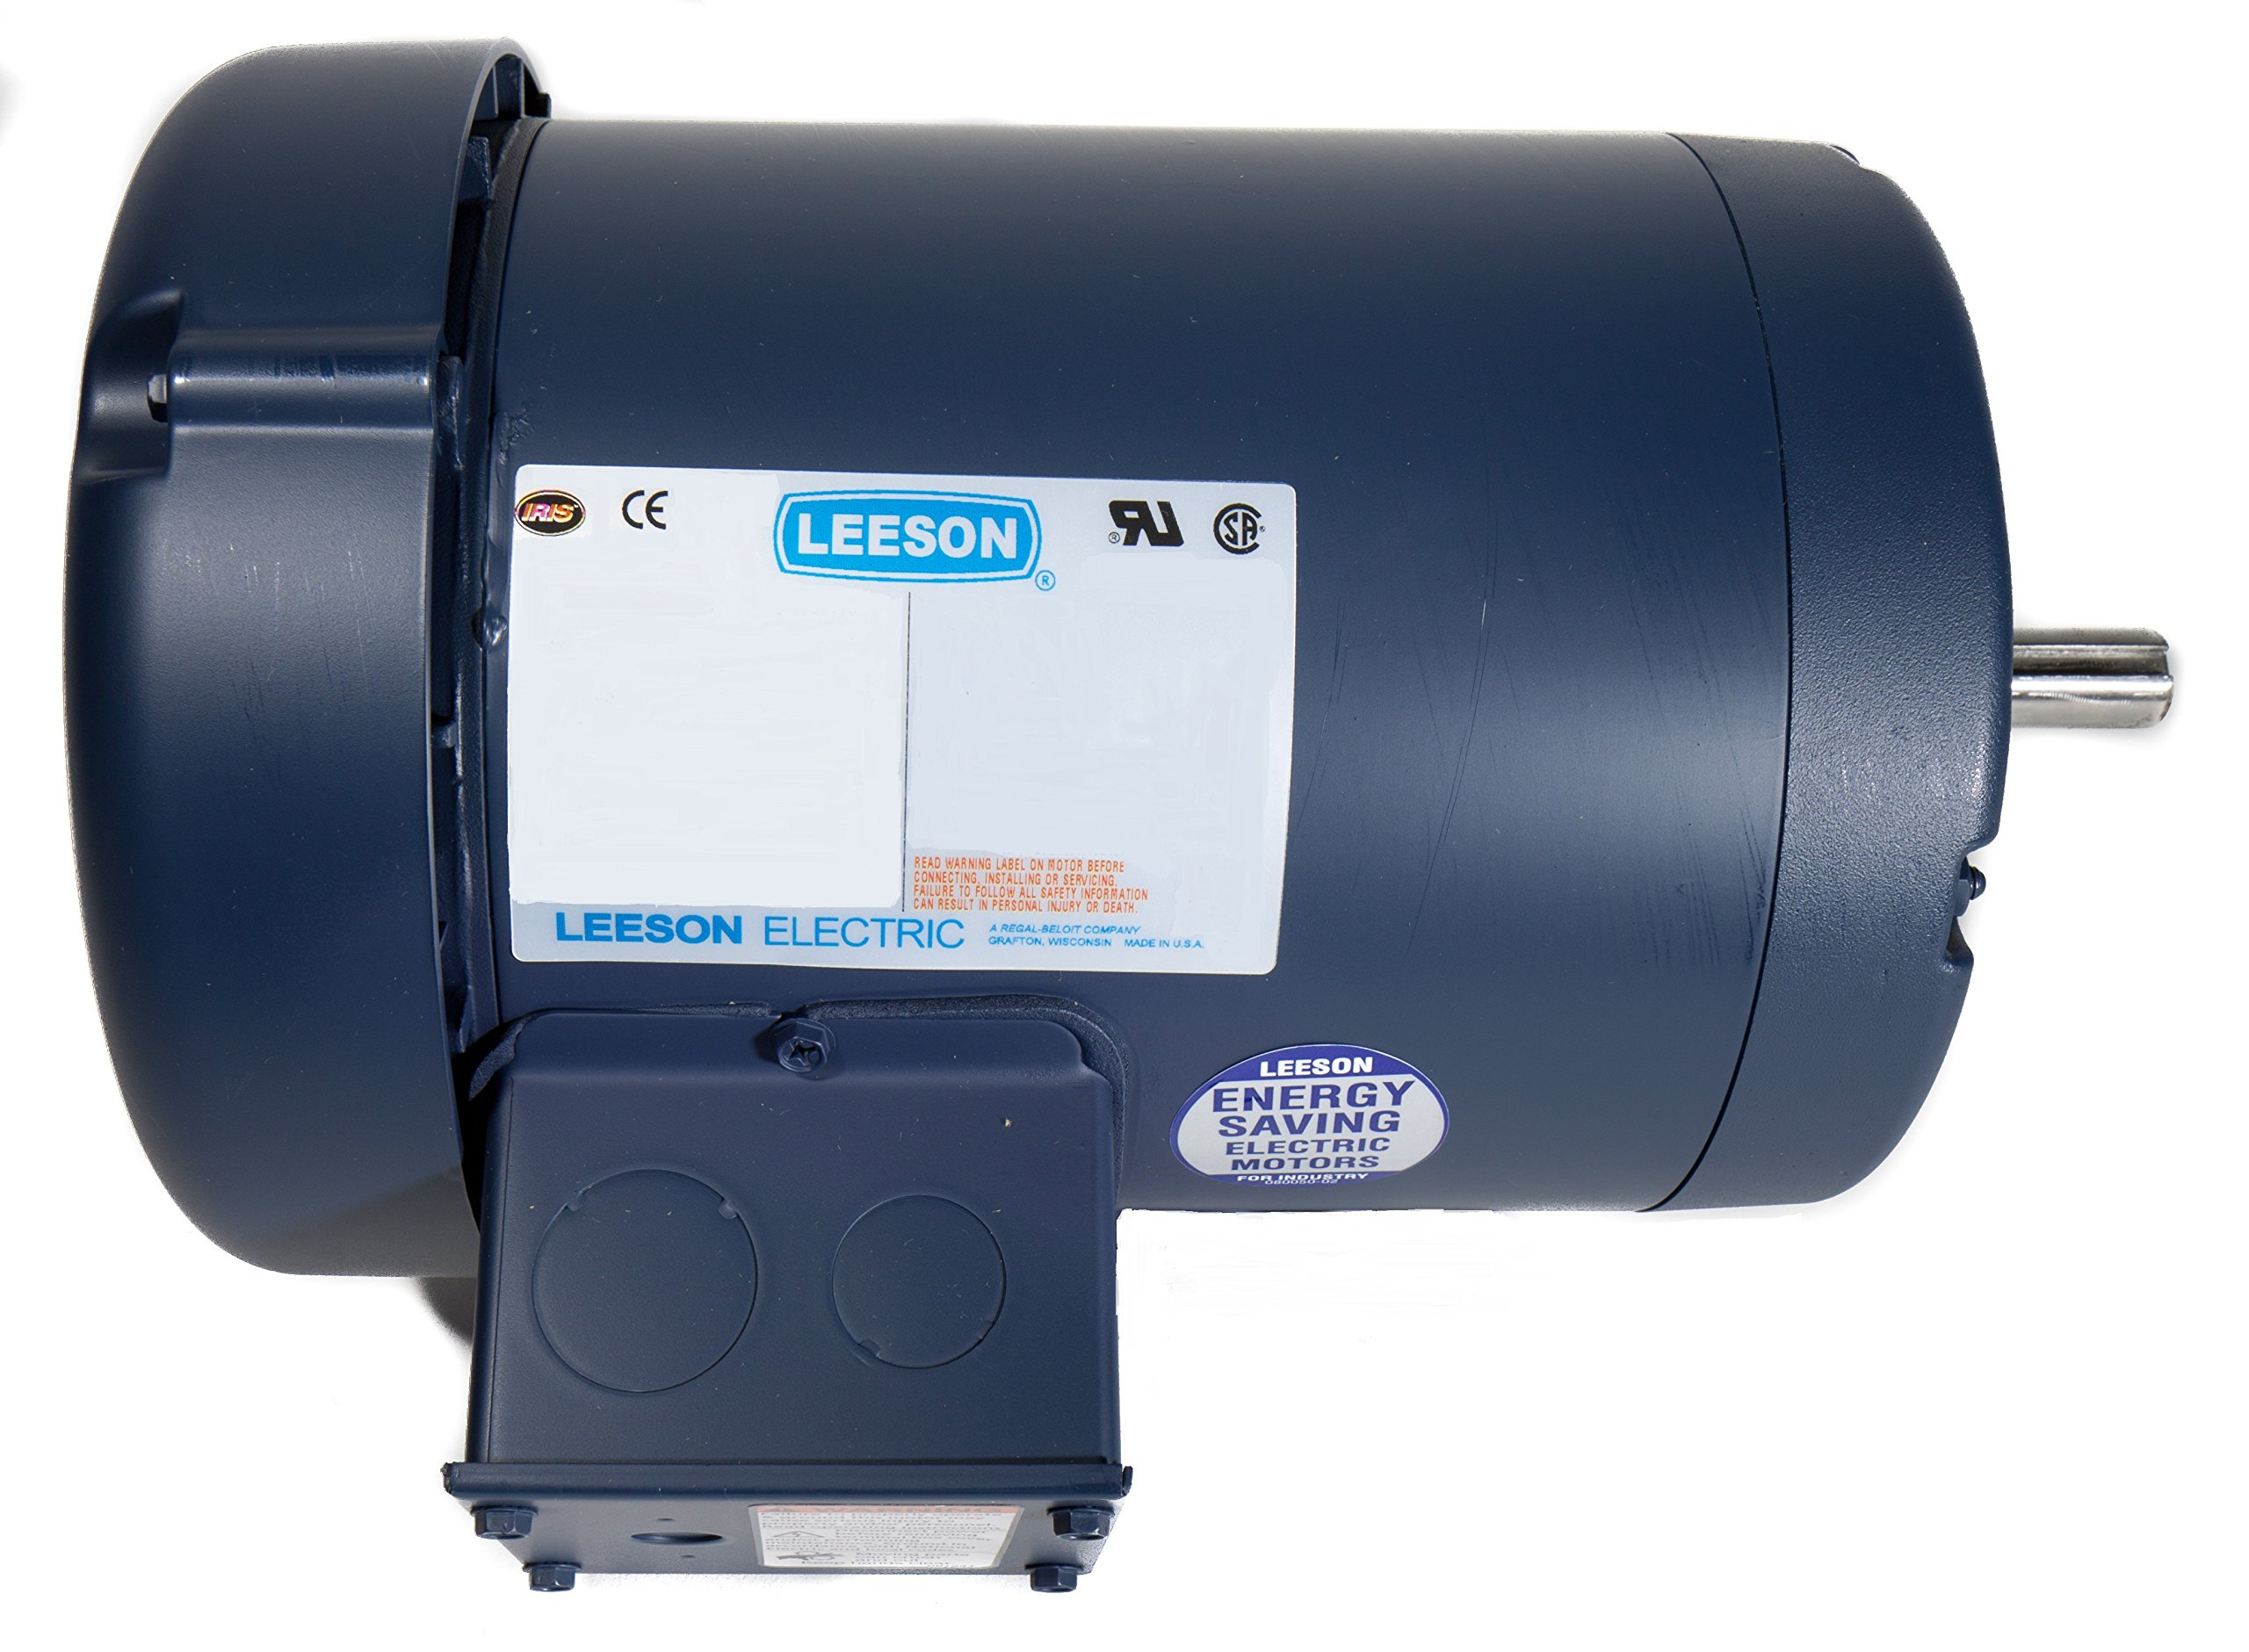 Leeson 121180.00 General Purpose C Face Motor, 3 Phase, 145TC Frame, Rigid Mounting, 1 1/2HP, 1800 RPM, 208-230/460V Voltage, 60/50Hz Fequency